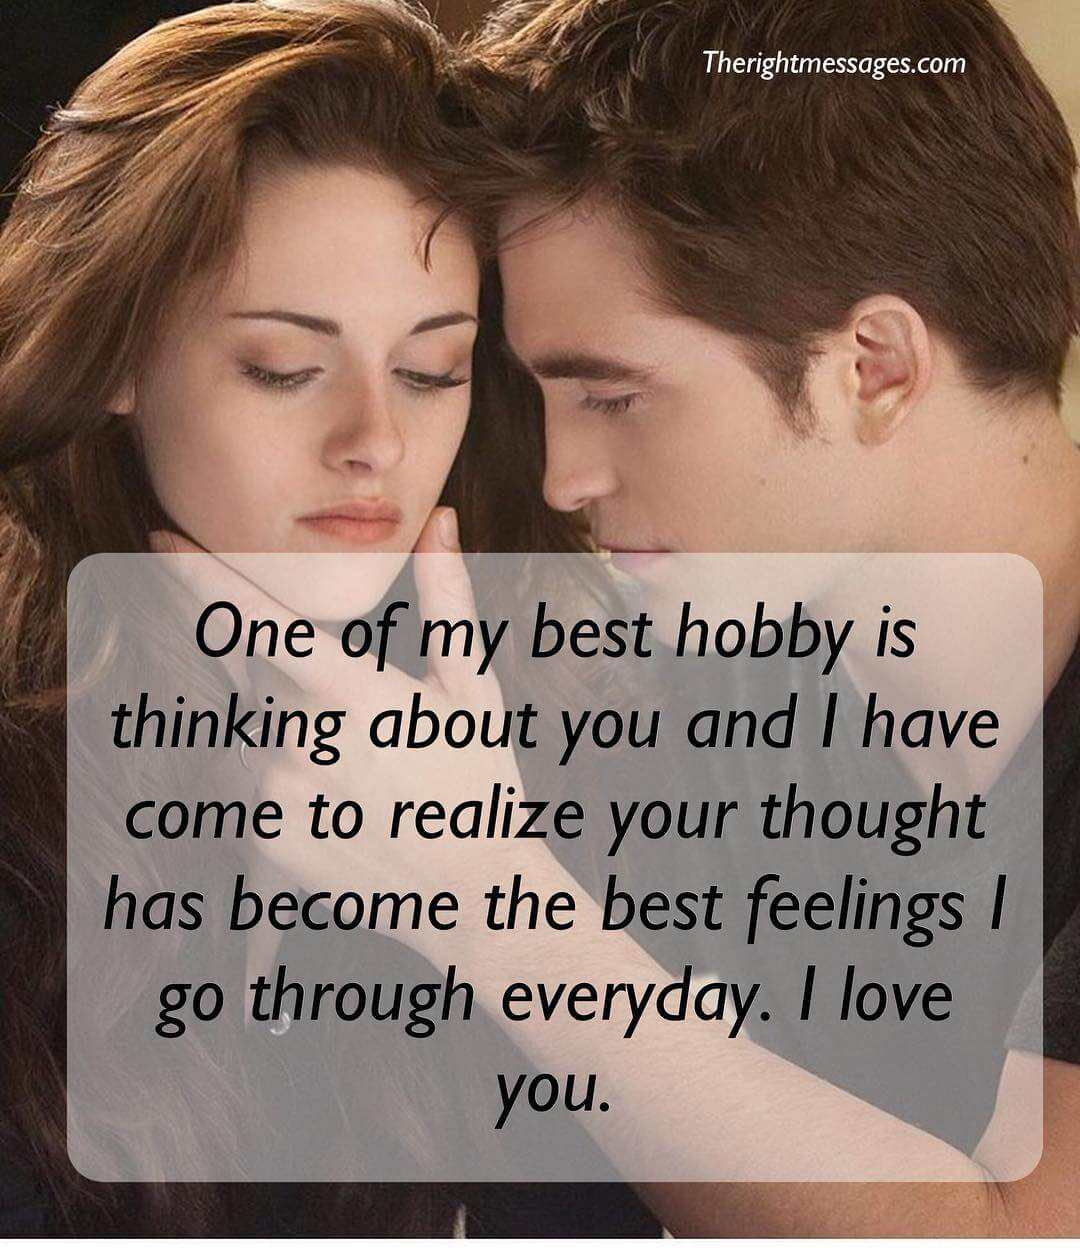 One of my best hobby is thinking about you